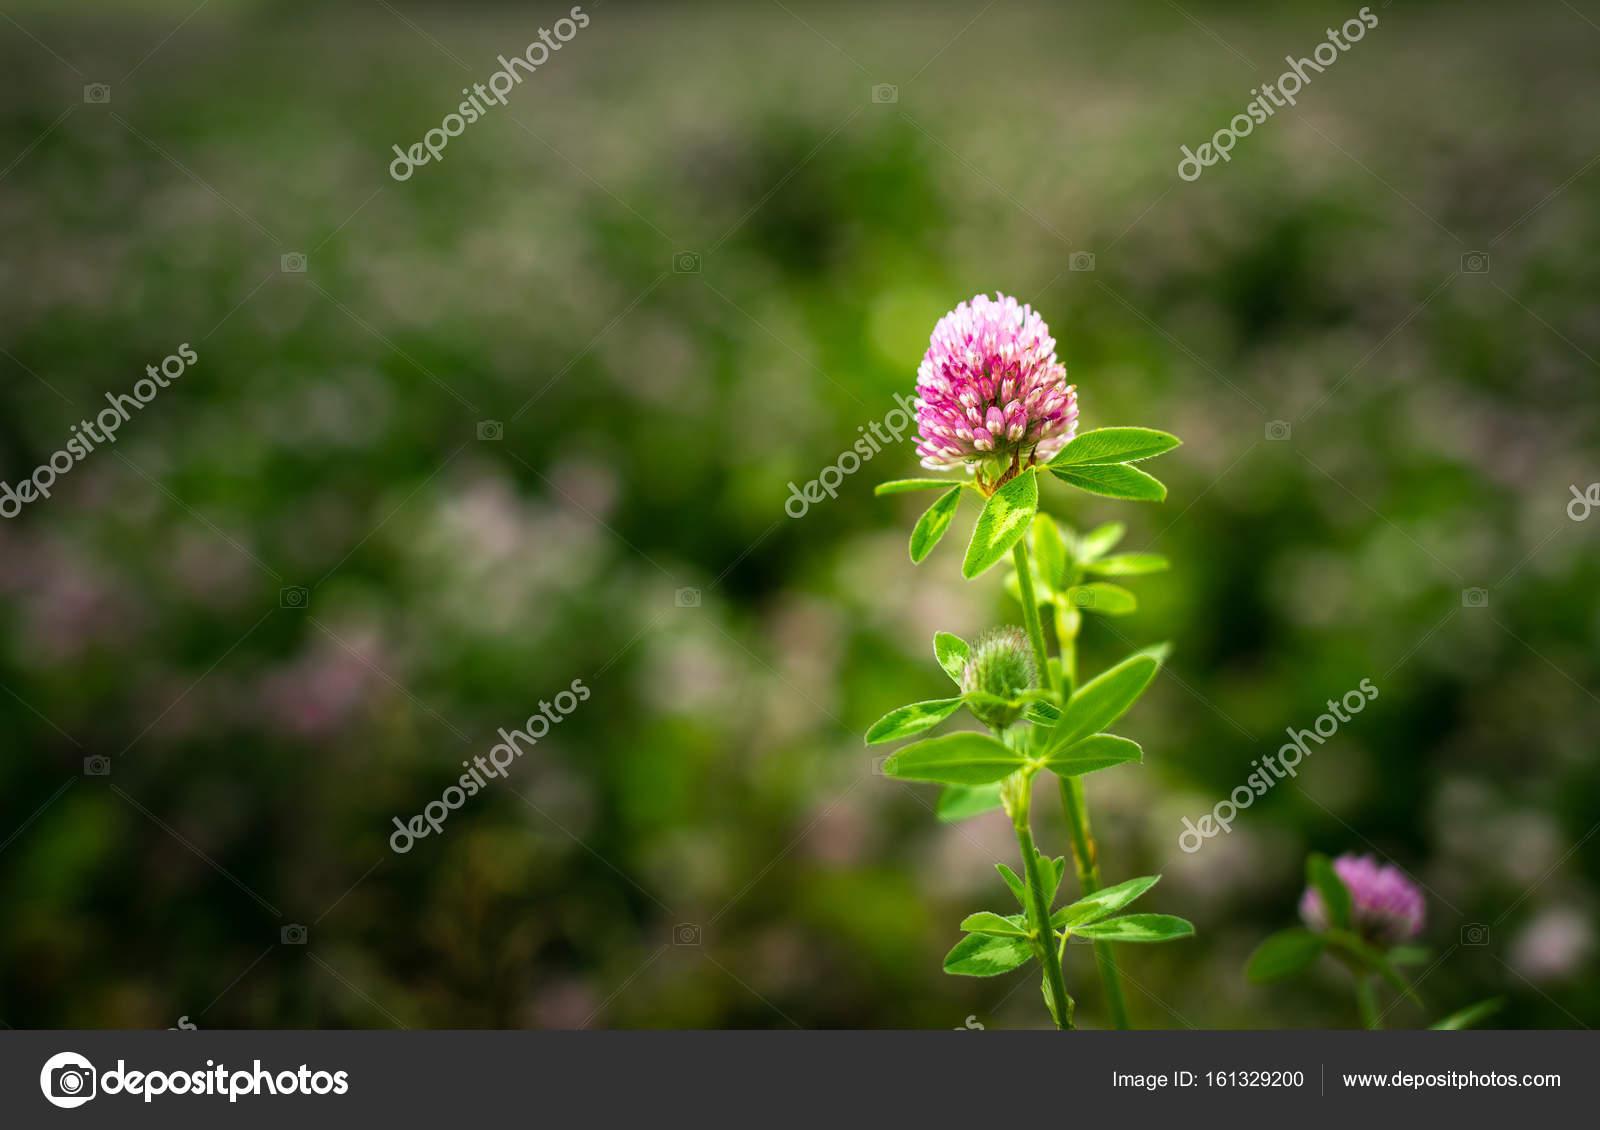 Clover Flower Trifolium Pratense Outside In A Field Stock Photo